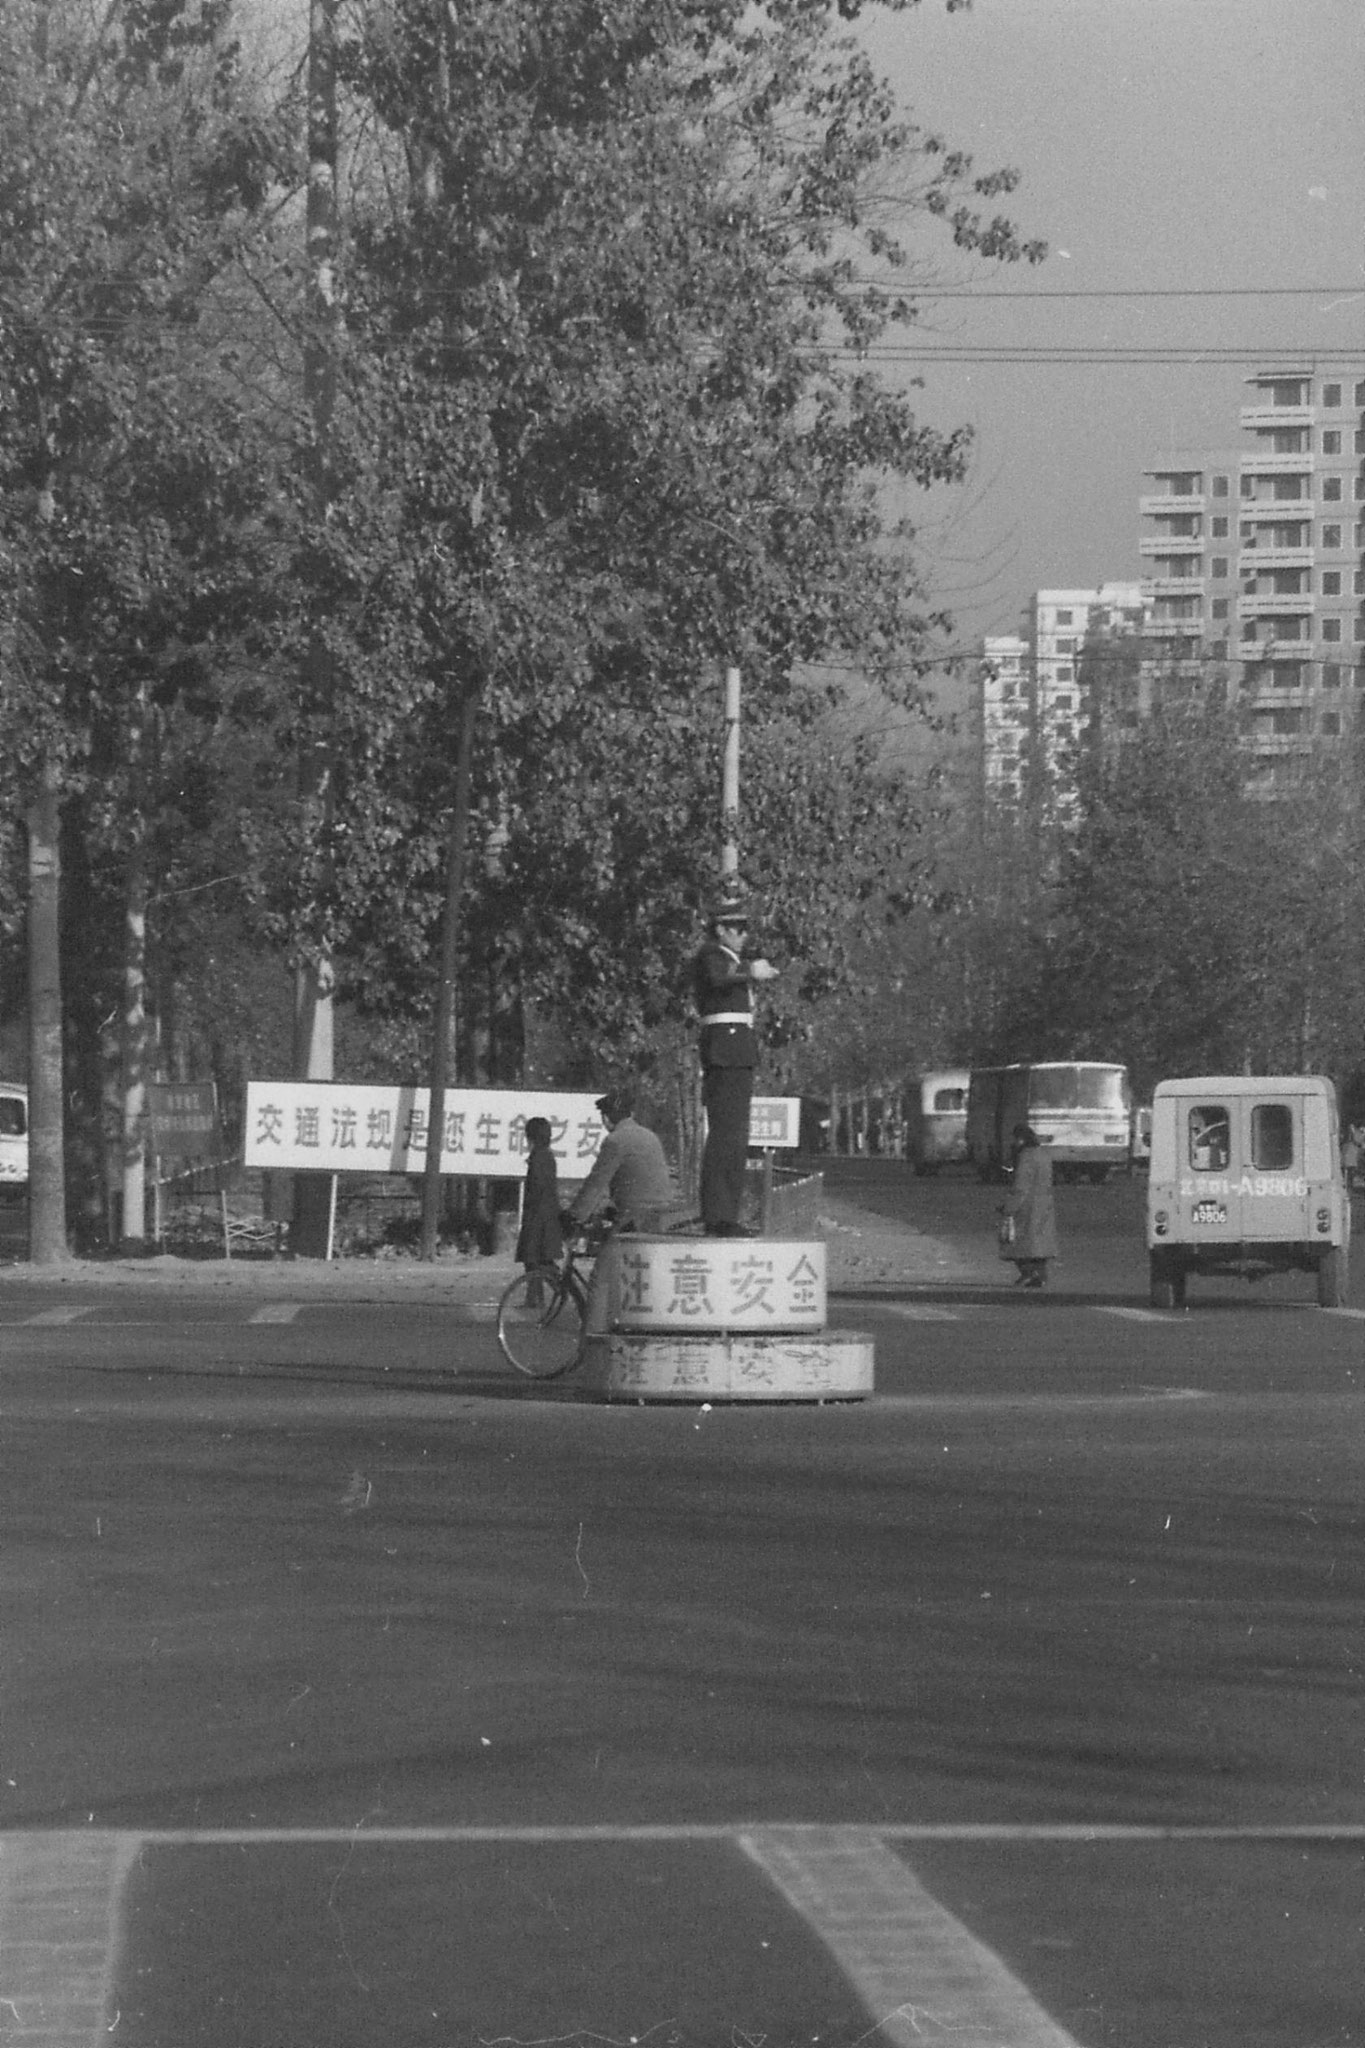 23/11/1988: 32:  outside Friendship Hotel